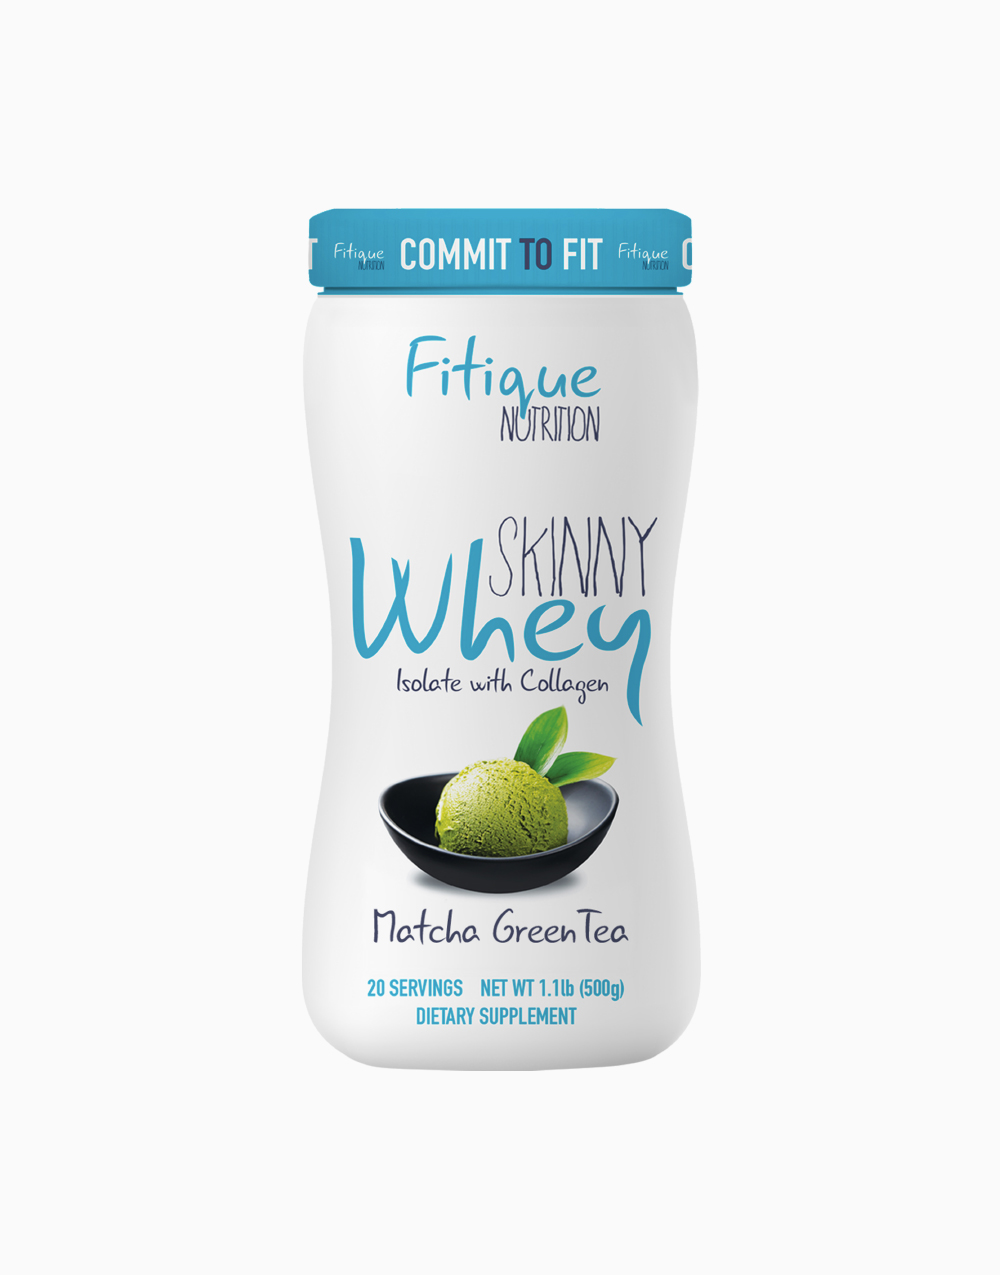 Skinny Whey Isolate With Collagen (Matcha Green Tea) by Fitique Nutrition